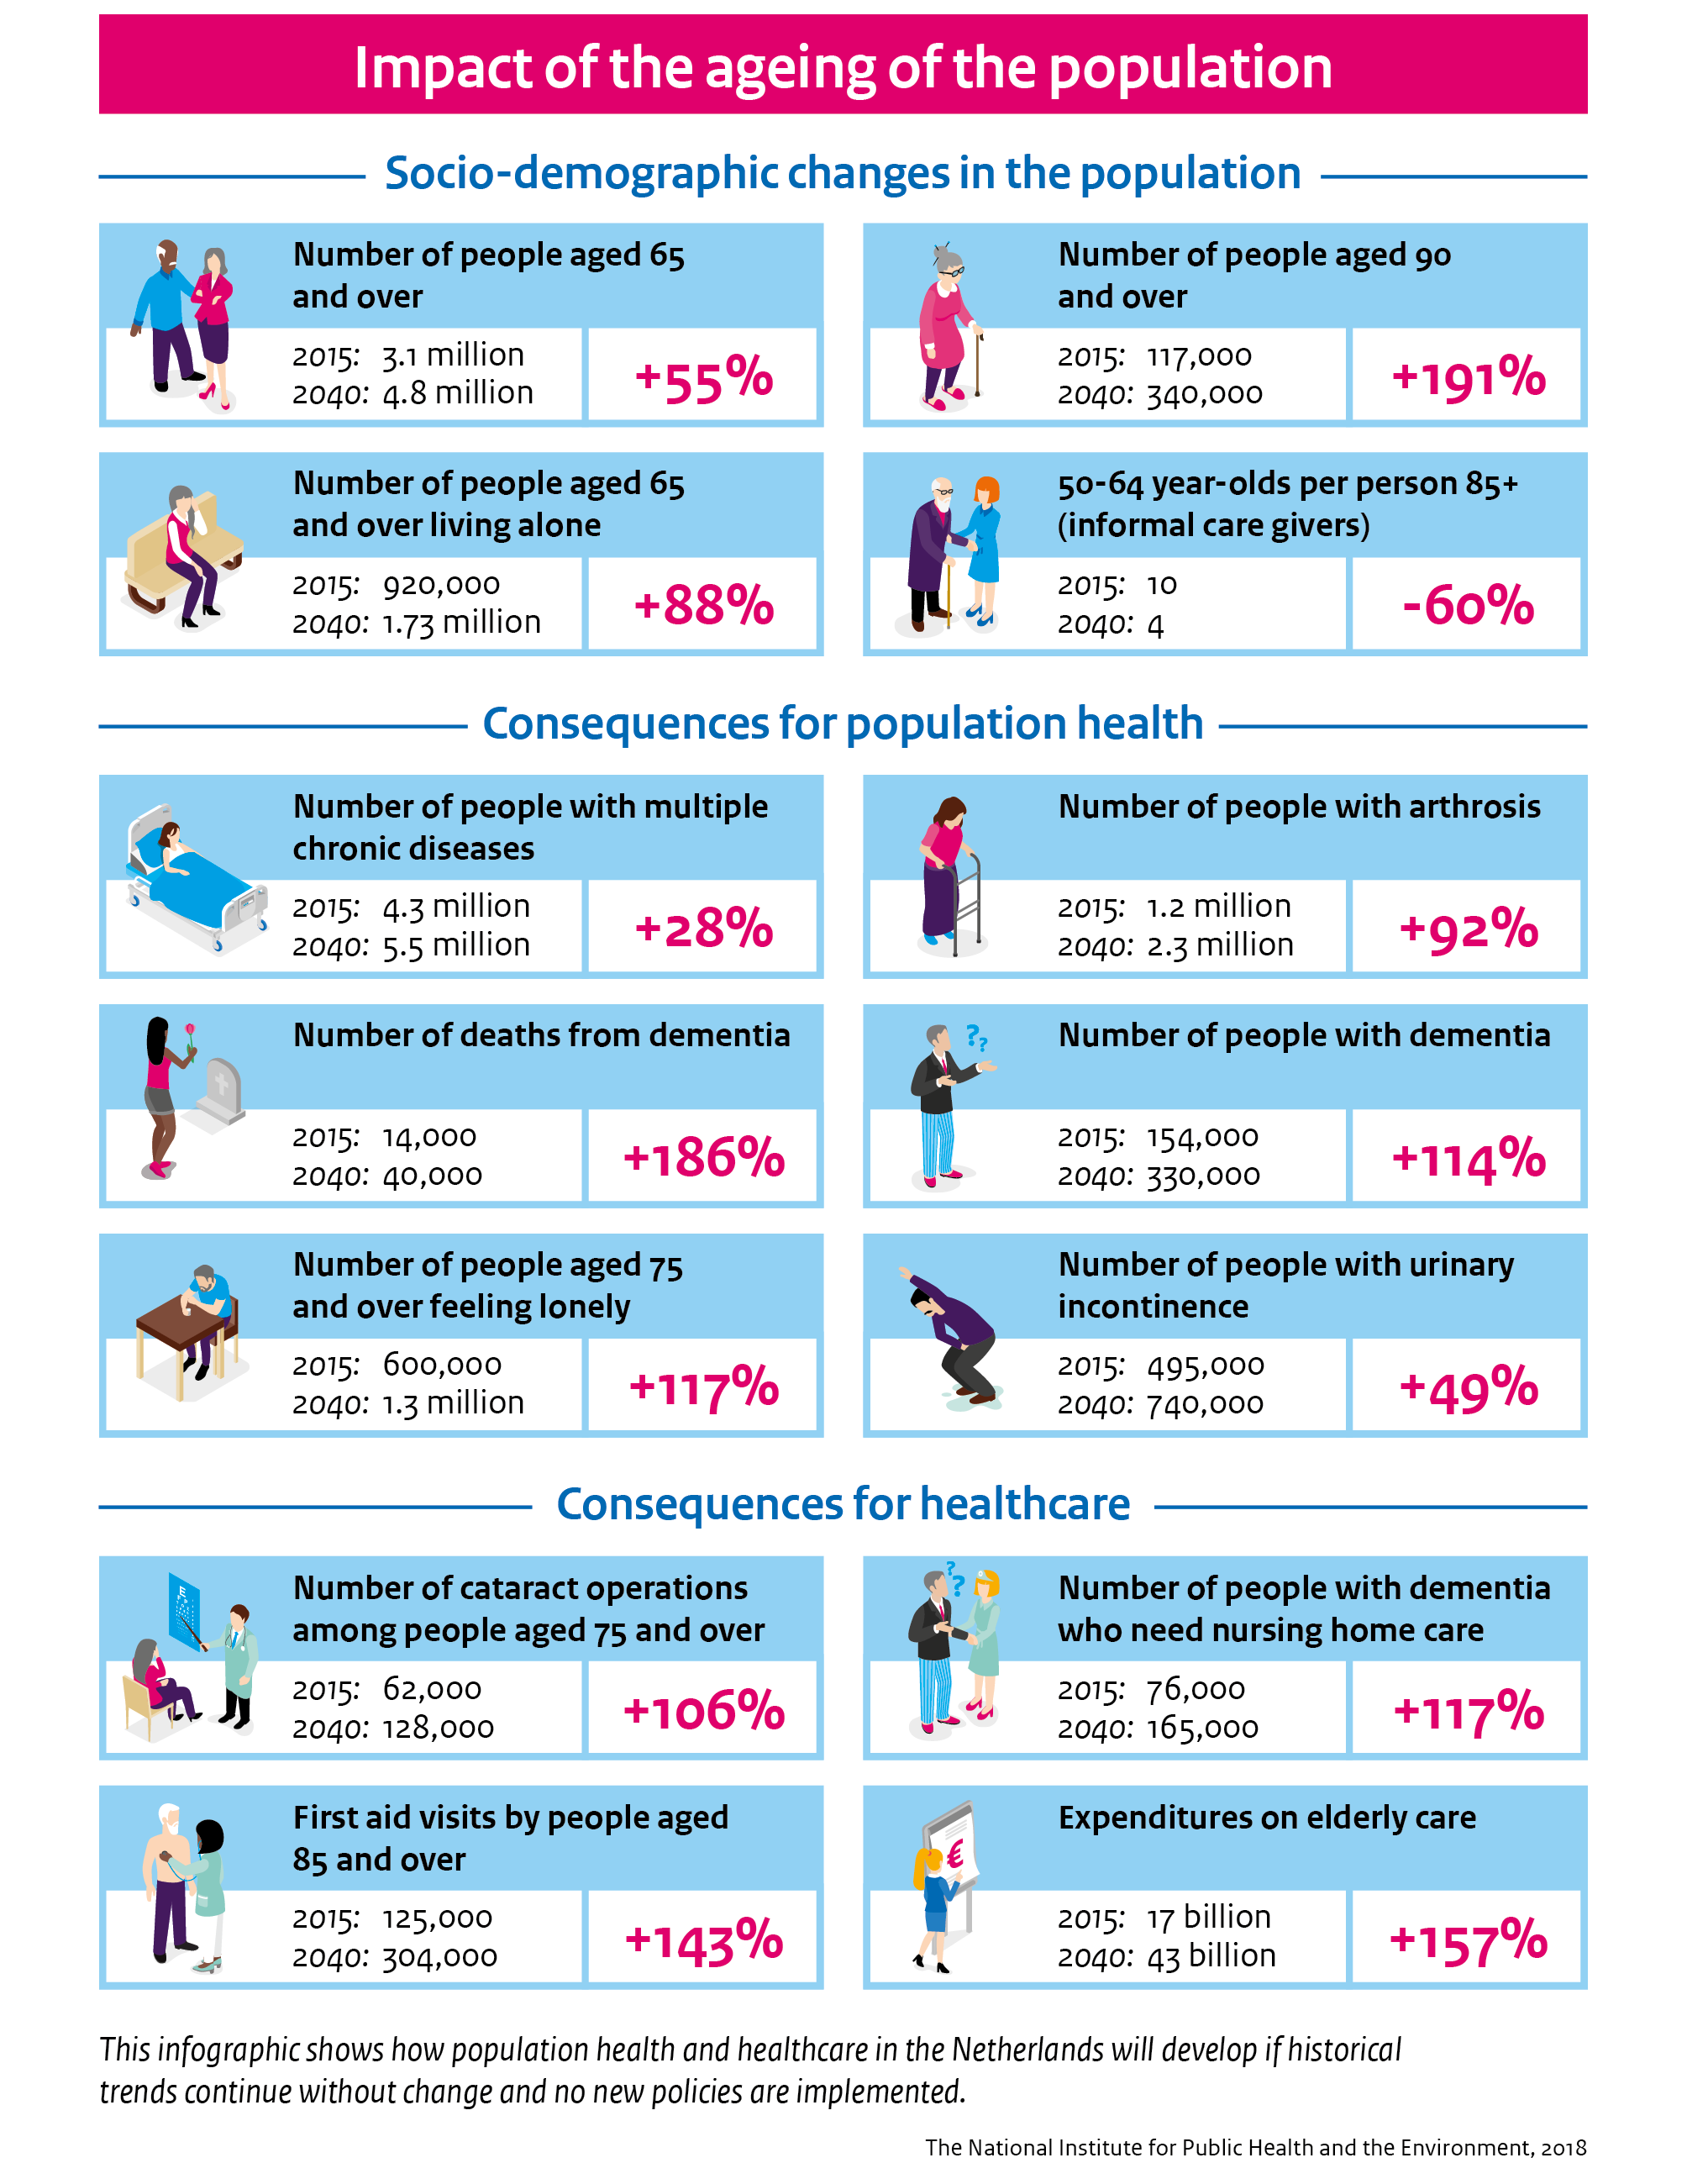 This infographic shows how population health and healthcare in the Netherlands will develop if historical trends continue without change and no new policies are implemented.